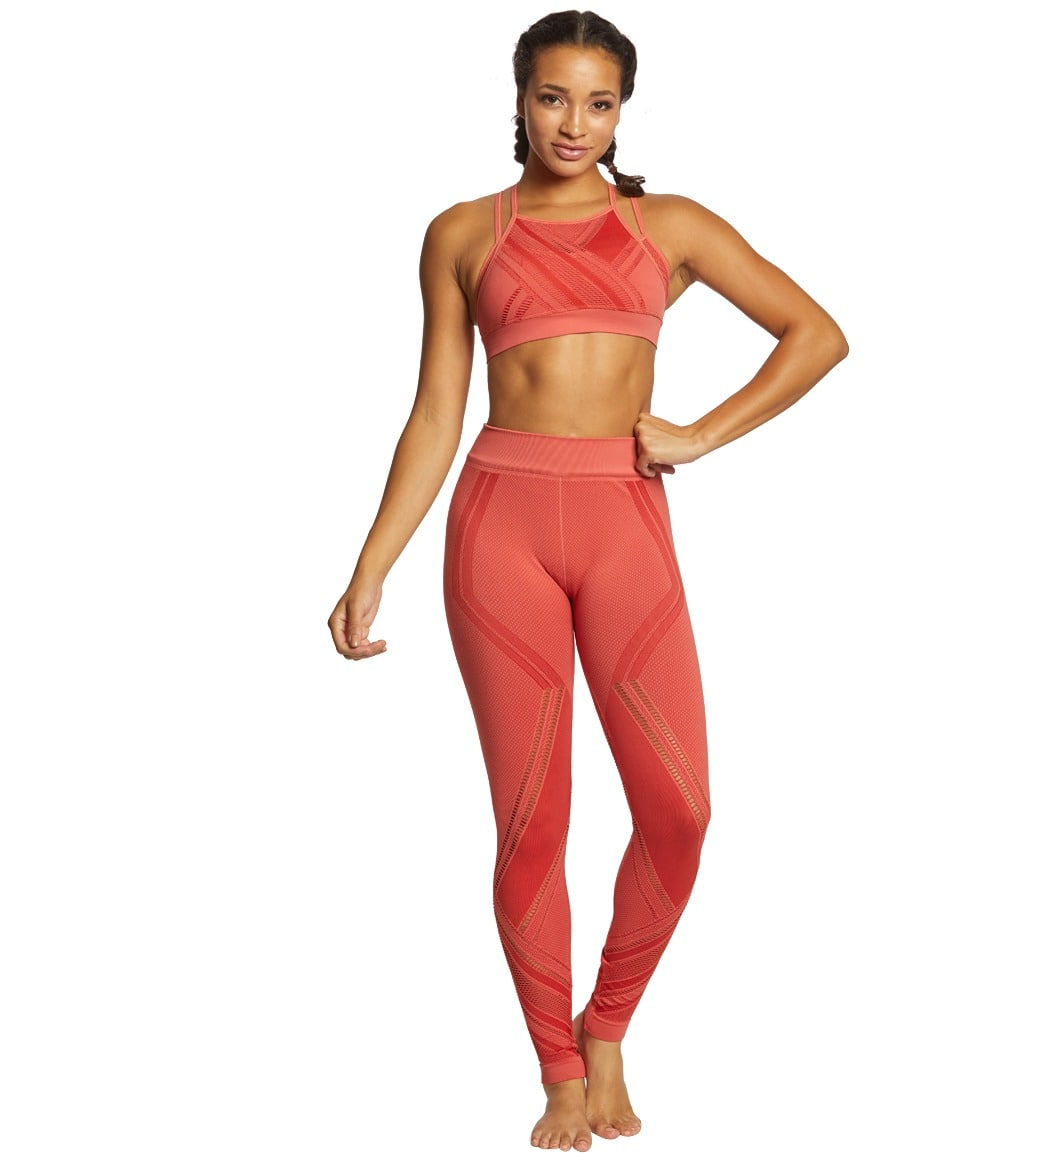 e752958892778 NUX Quintissential Seamless Yoga Sports Bra at YogaOutlet.com - Free ...